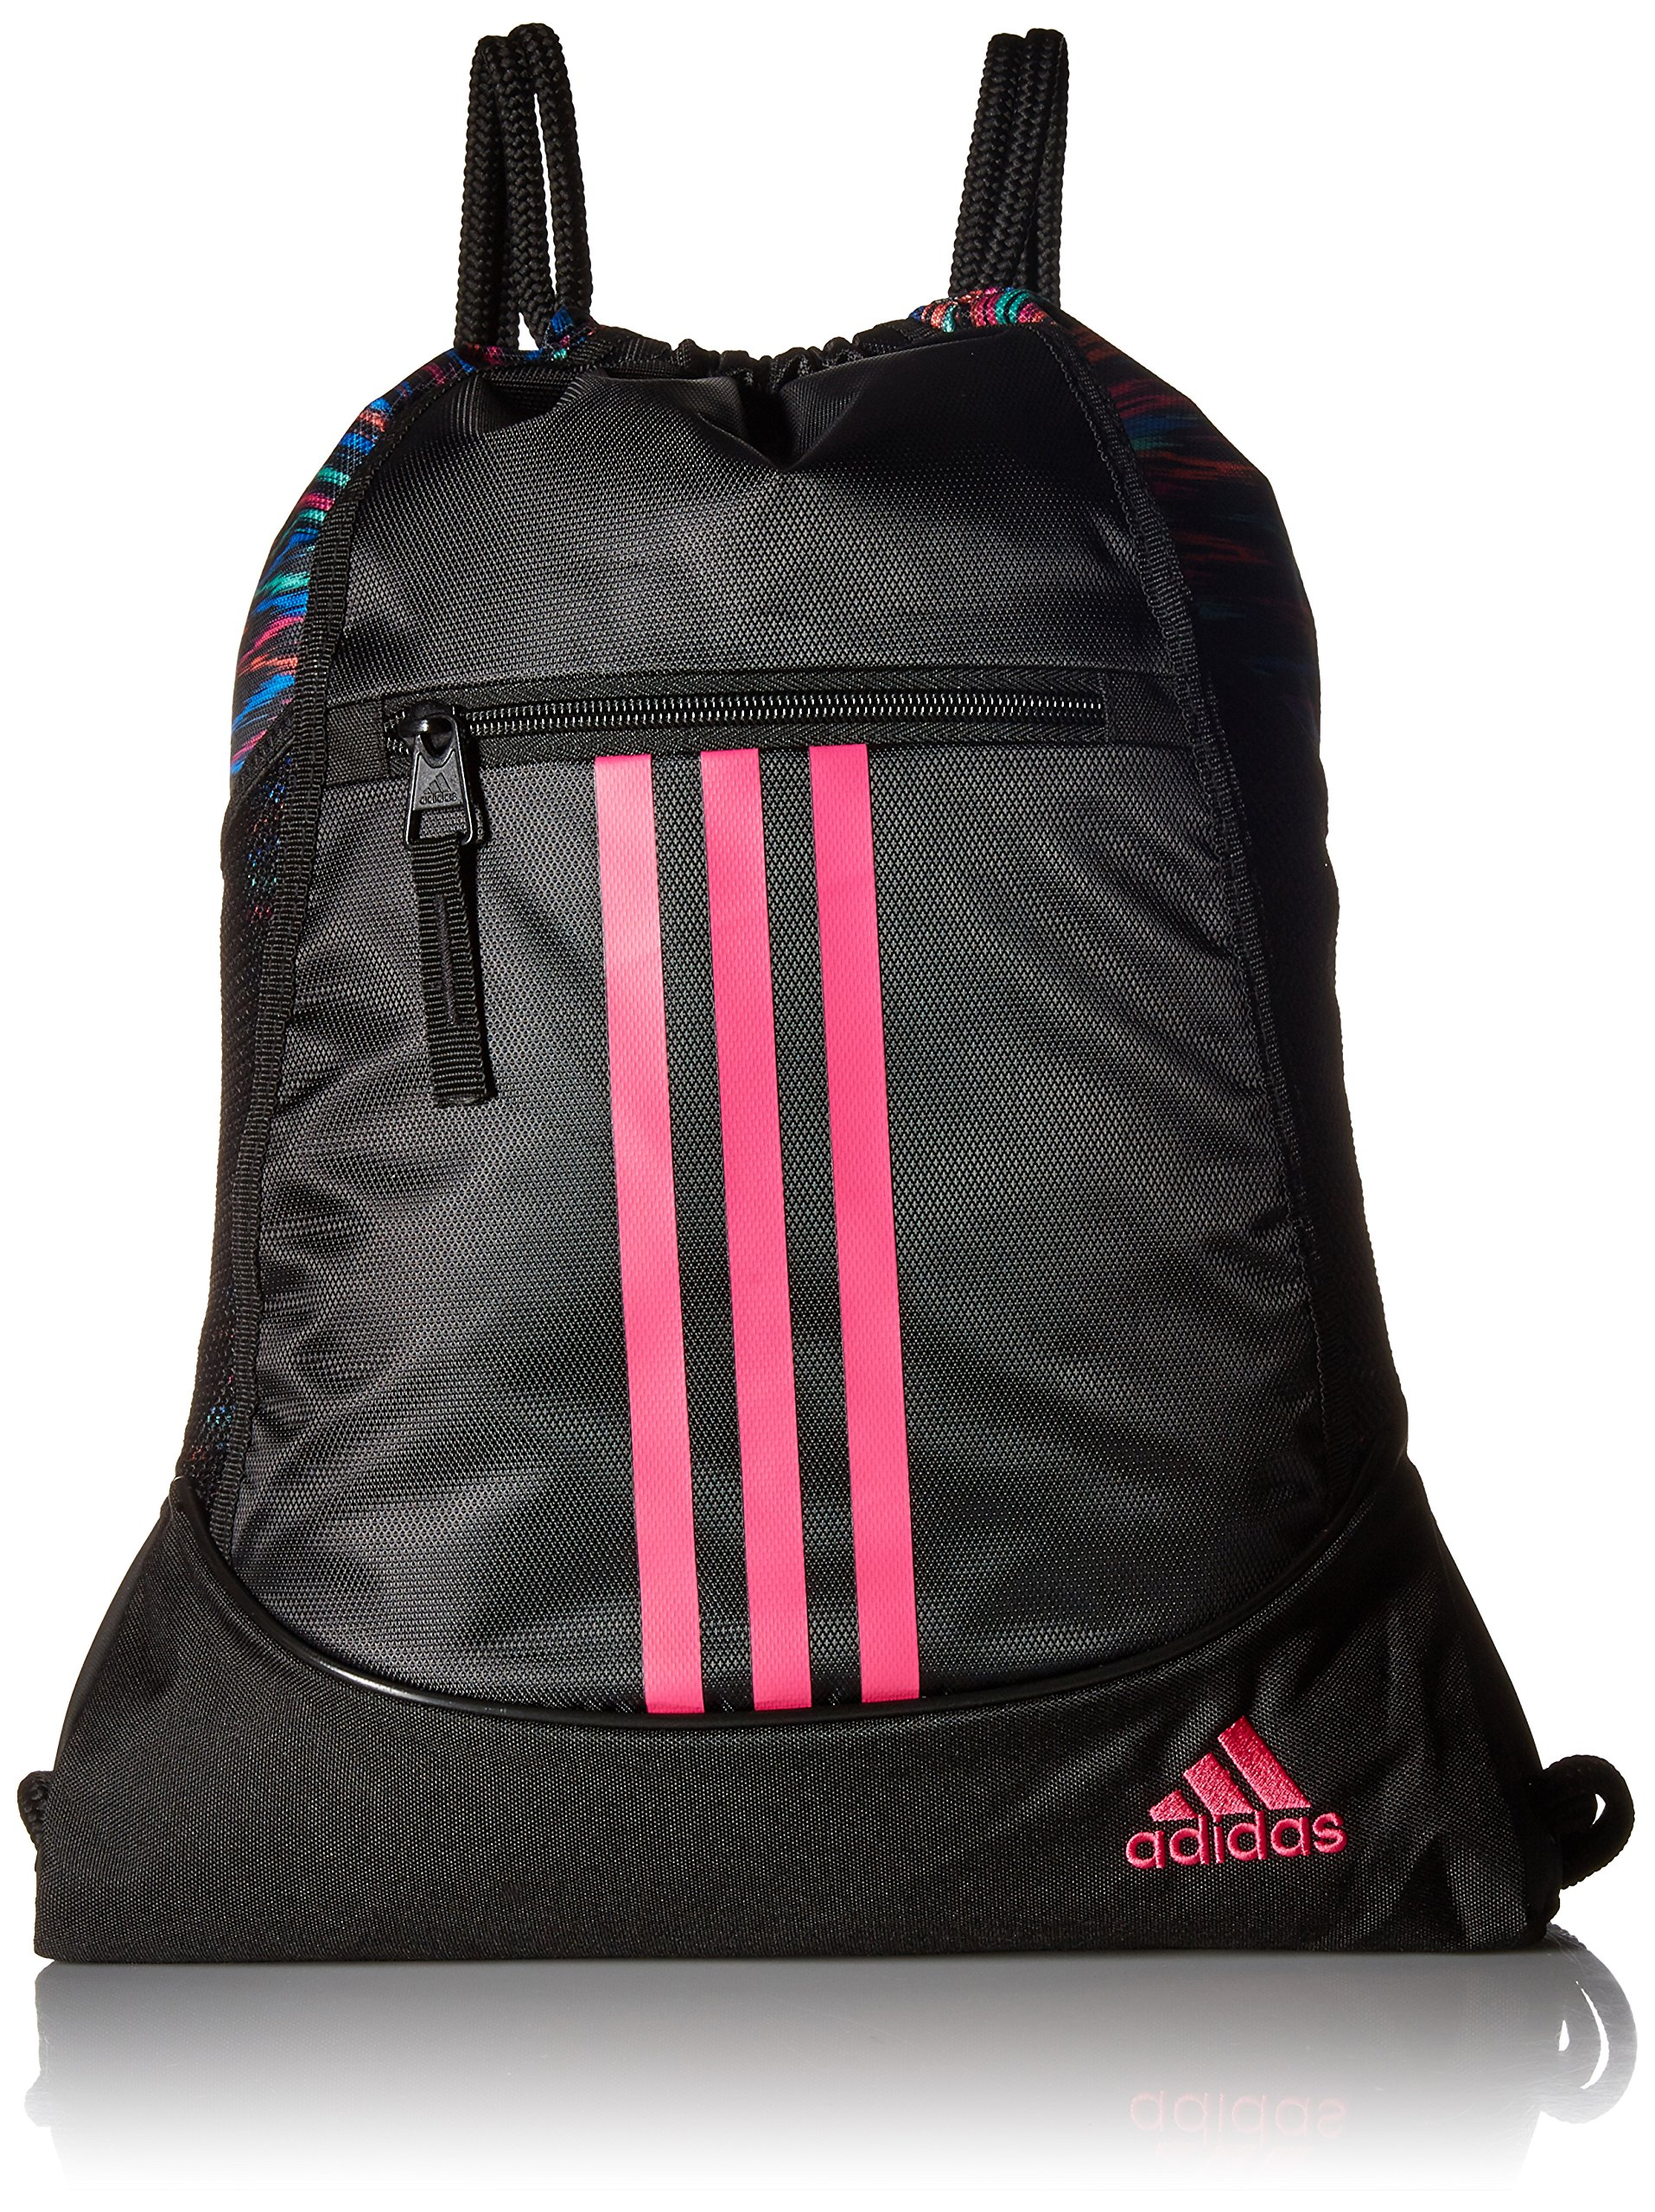 adidas Alliance II Sack Pack, One Size, Black Twister/Black/Shock Pink